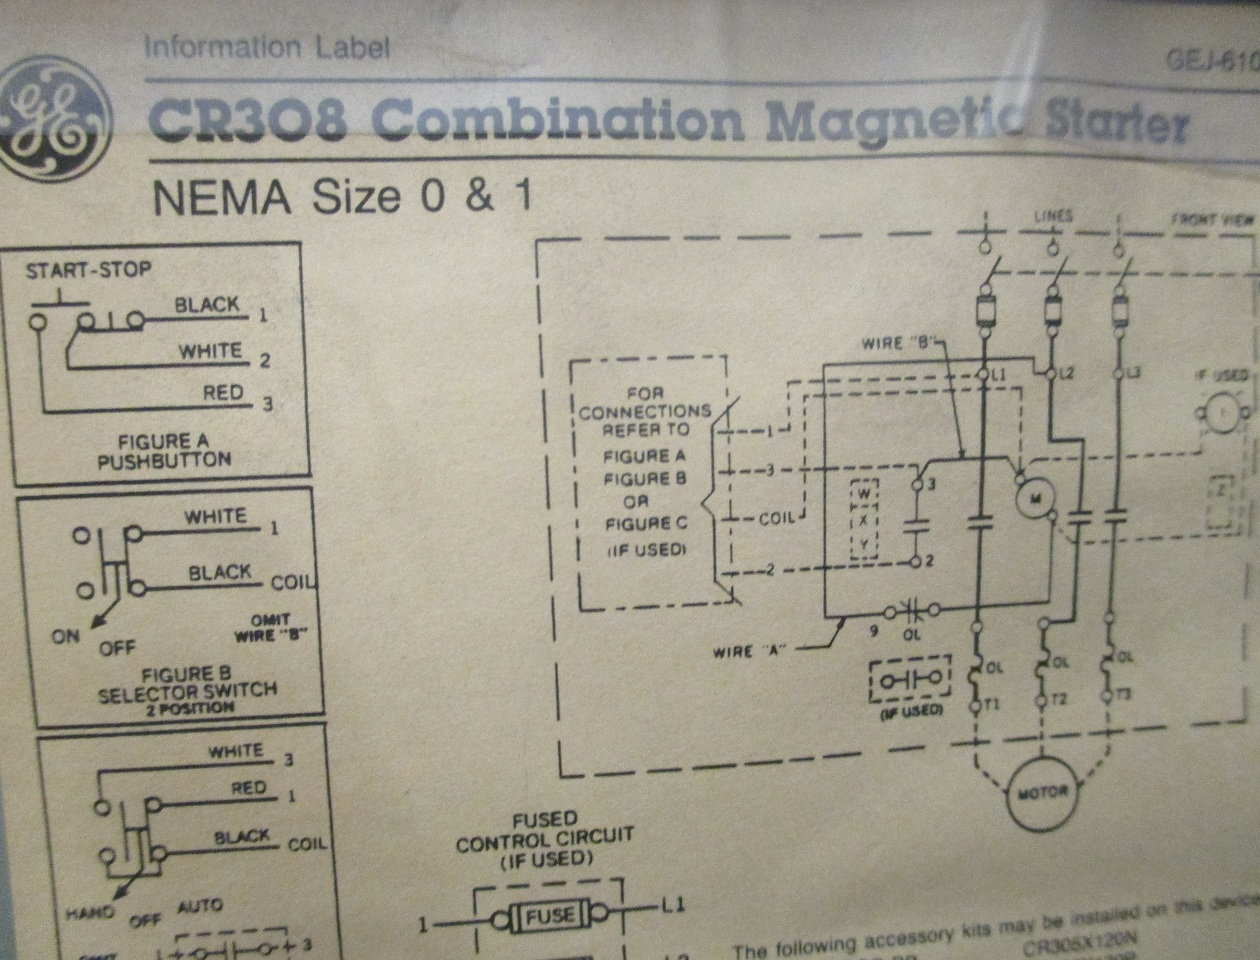 dis3585 ge combination magnetic starter cr308 600v max complete enclosure 300 line control 3?resize\=665%2C507 ge cr 308 motor starter wiring diagram wiring diagrams  at mifinder.co